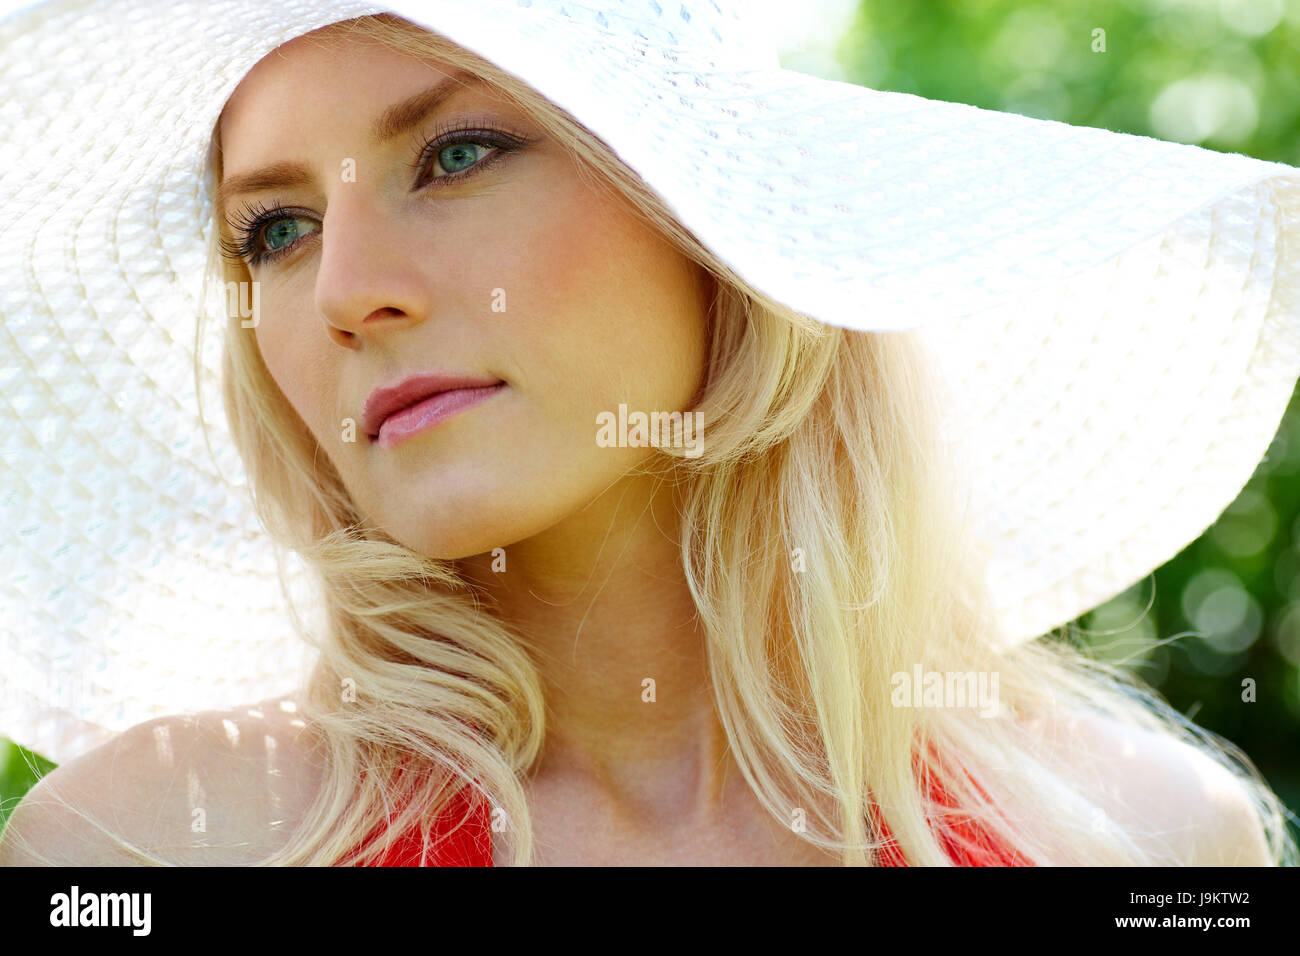 woman, humans, human beings, people, folk, persons, human, human being, - Stock Image